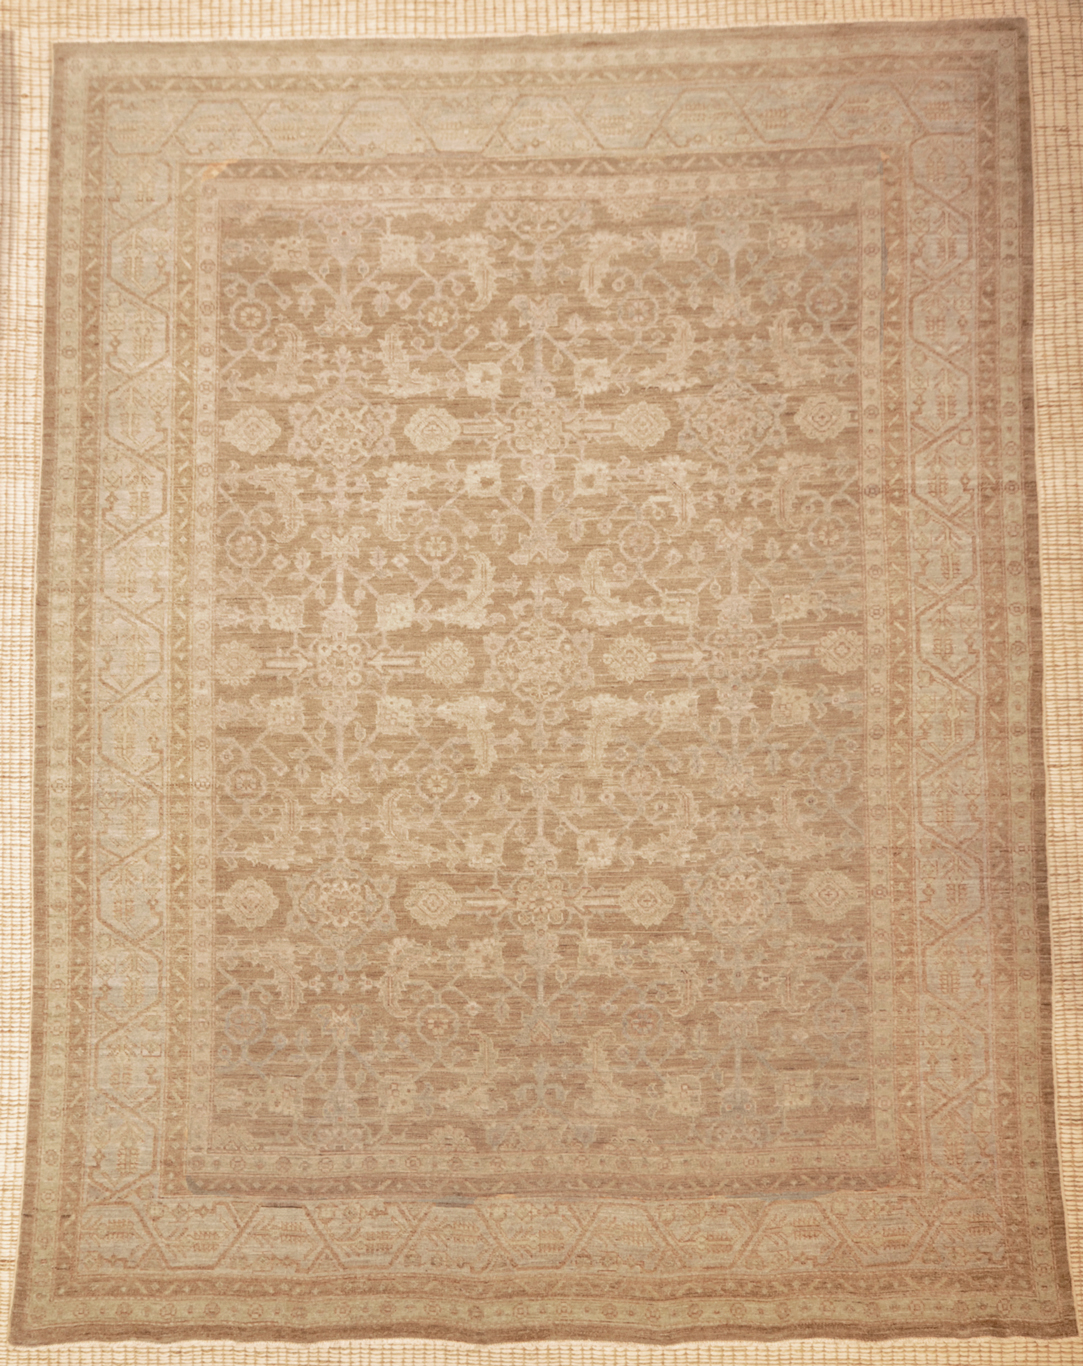 finest oushak rug santa barbara design cener rugs and more carpets area rugs oriental carpets 1